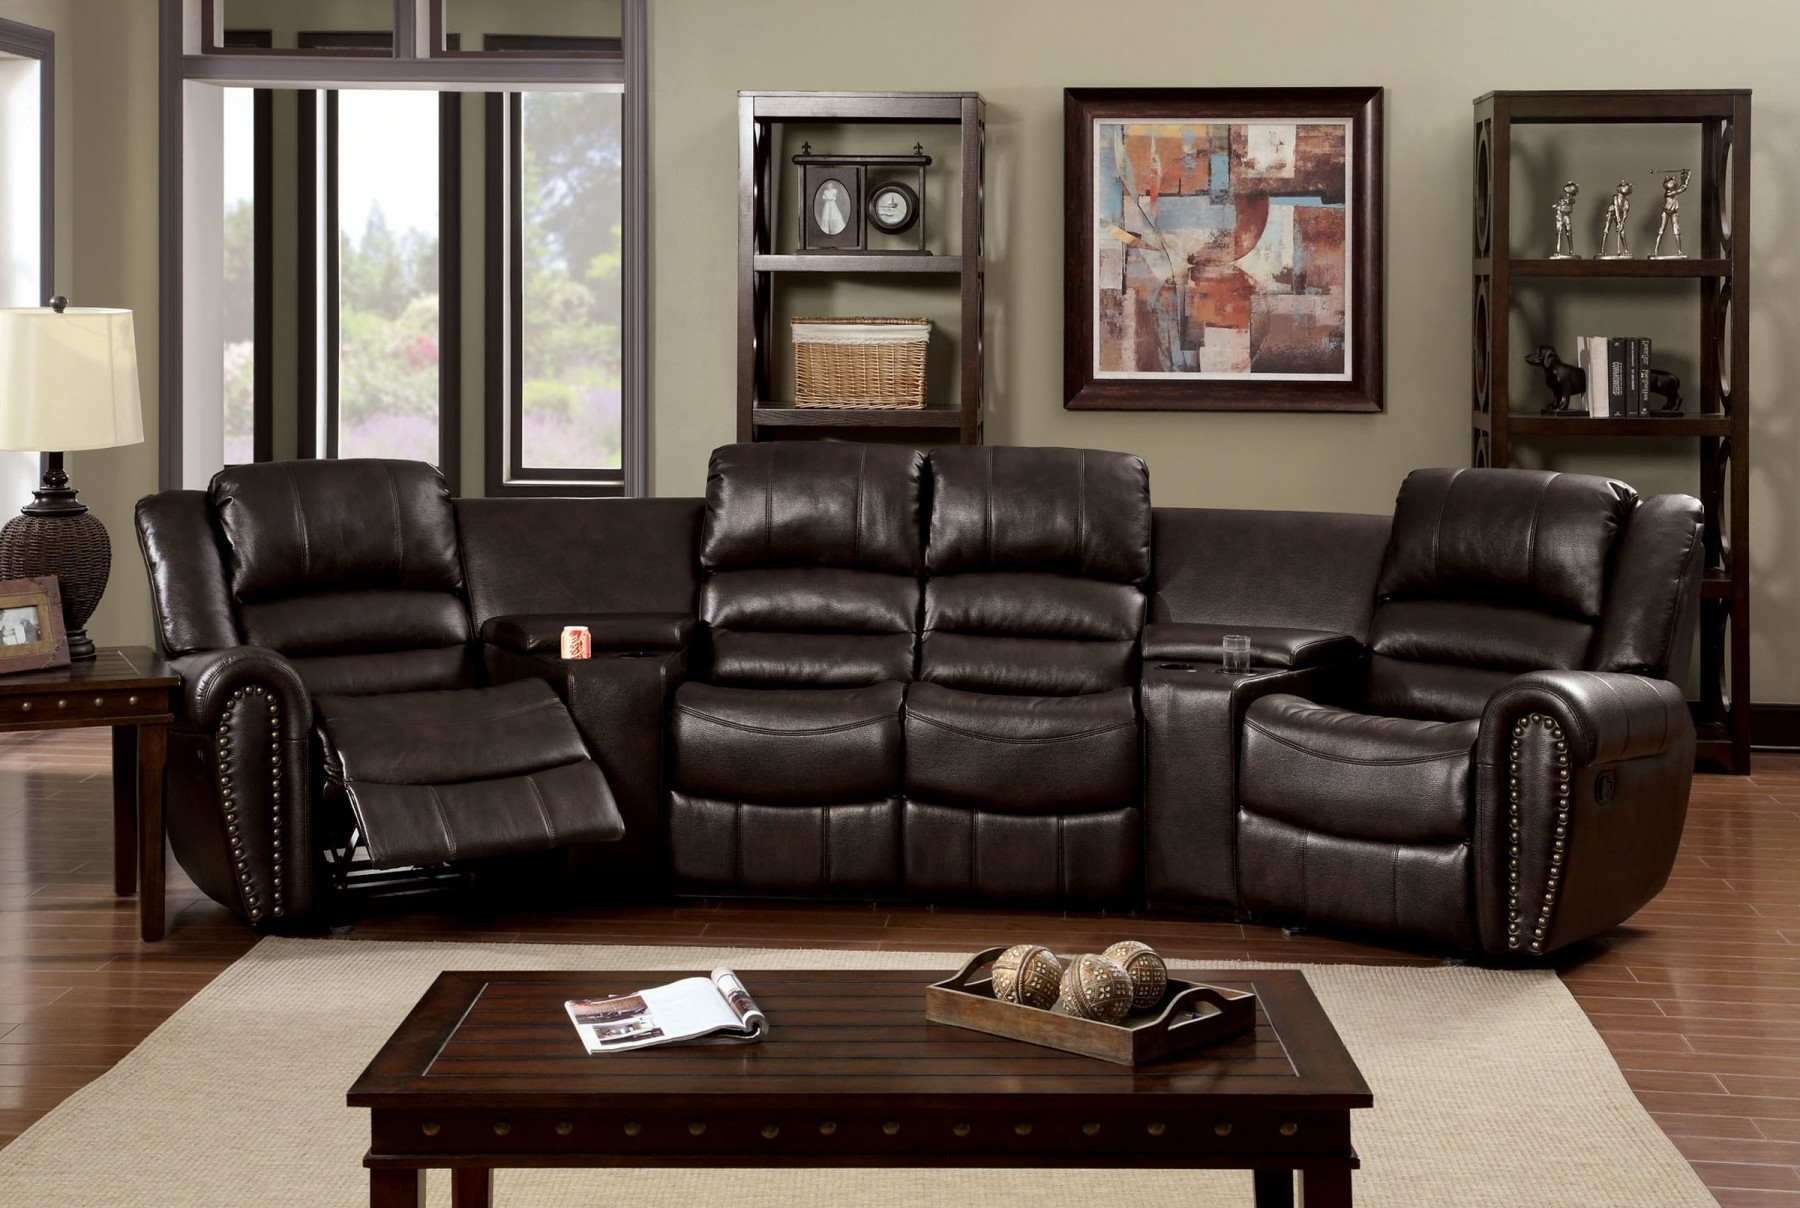 Widely Used Sectional Sofas San Antonio Tx Throughout Sectional Sofas In San Antonio (View 15 of 15)